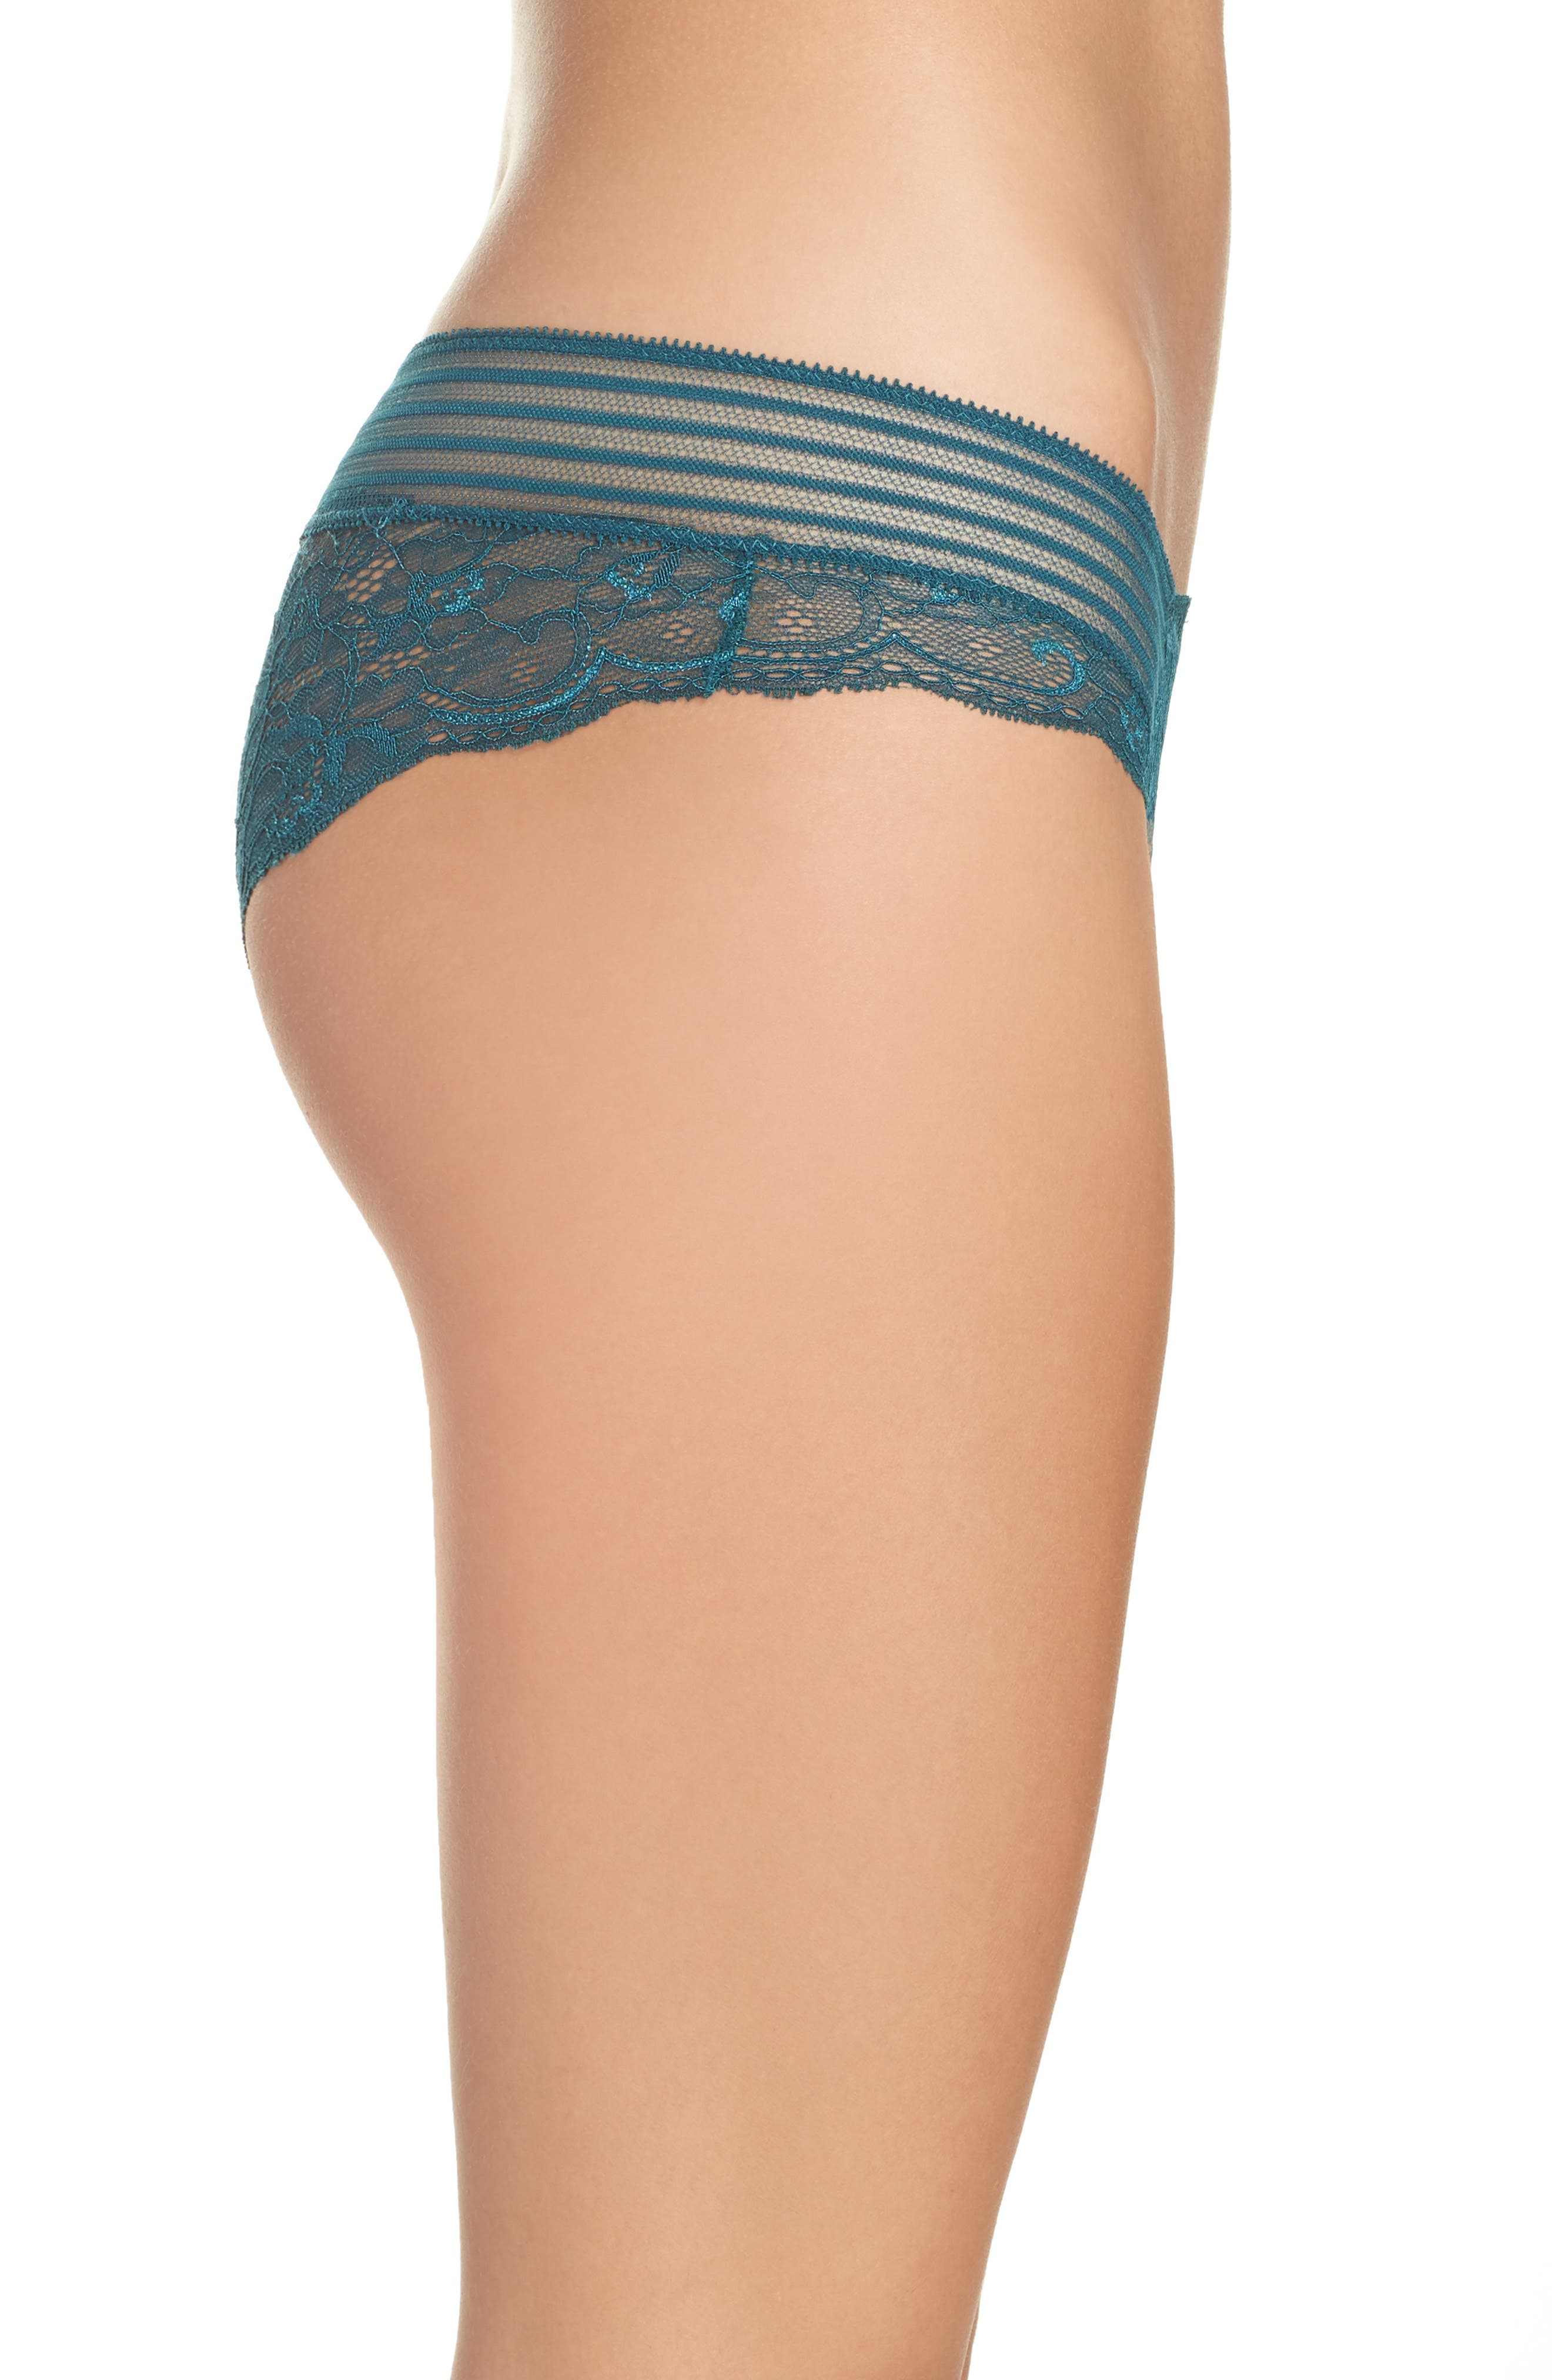 Lace Hipster Panties,                             Alternate thumbnail 15, color,